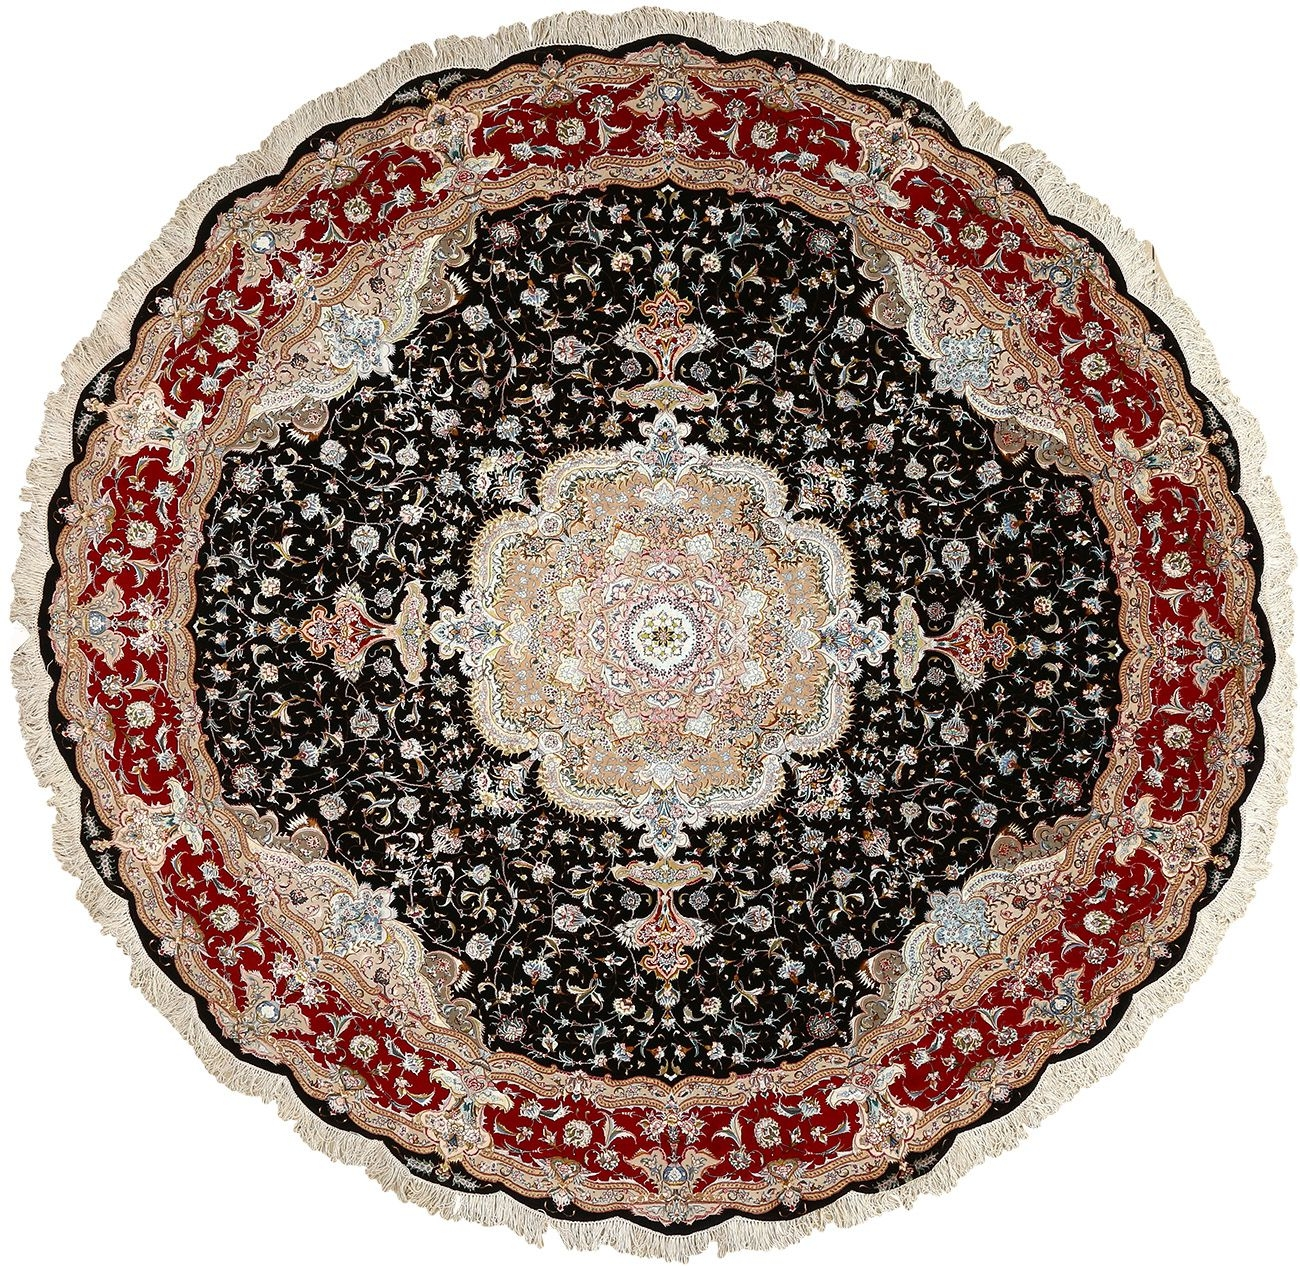 Intricate Round Vintage Tabriz Persian Rug 51136 Nazmiyal With Round Persian Rugs (Image 10 of 15)